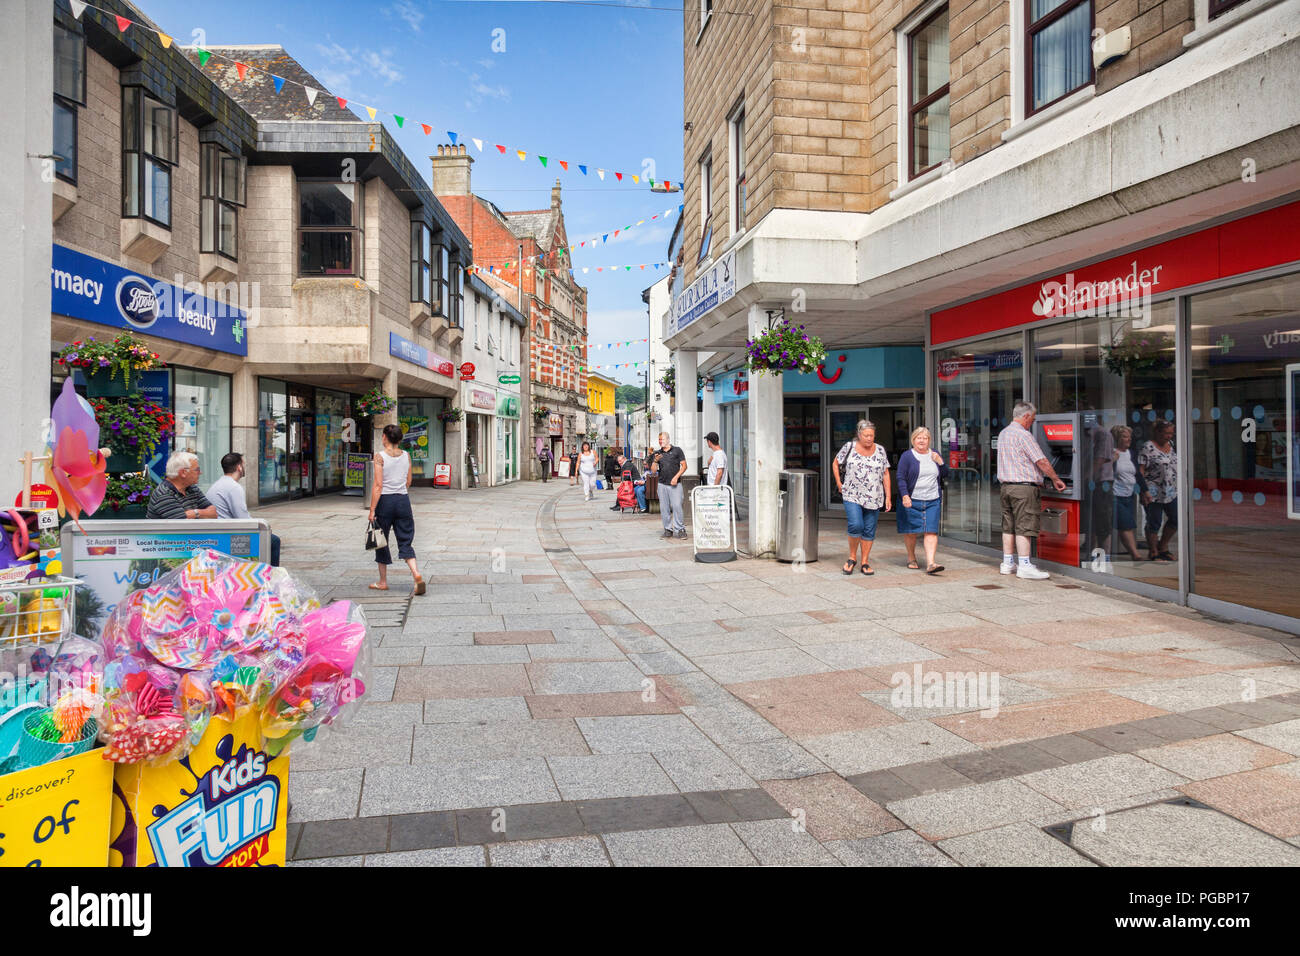 11 June 2018: St Austell, Cornwall, UK - Shopping in Fore Street. - Stock Image